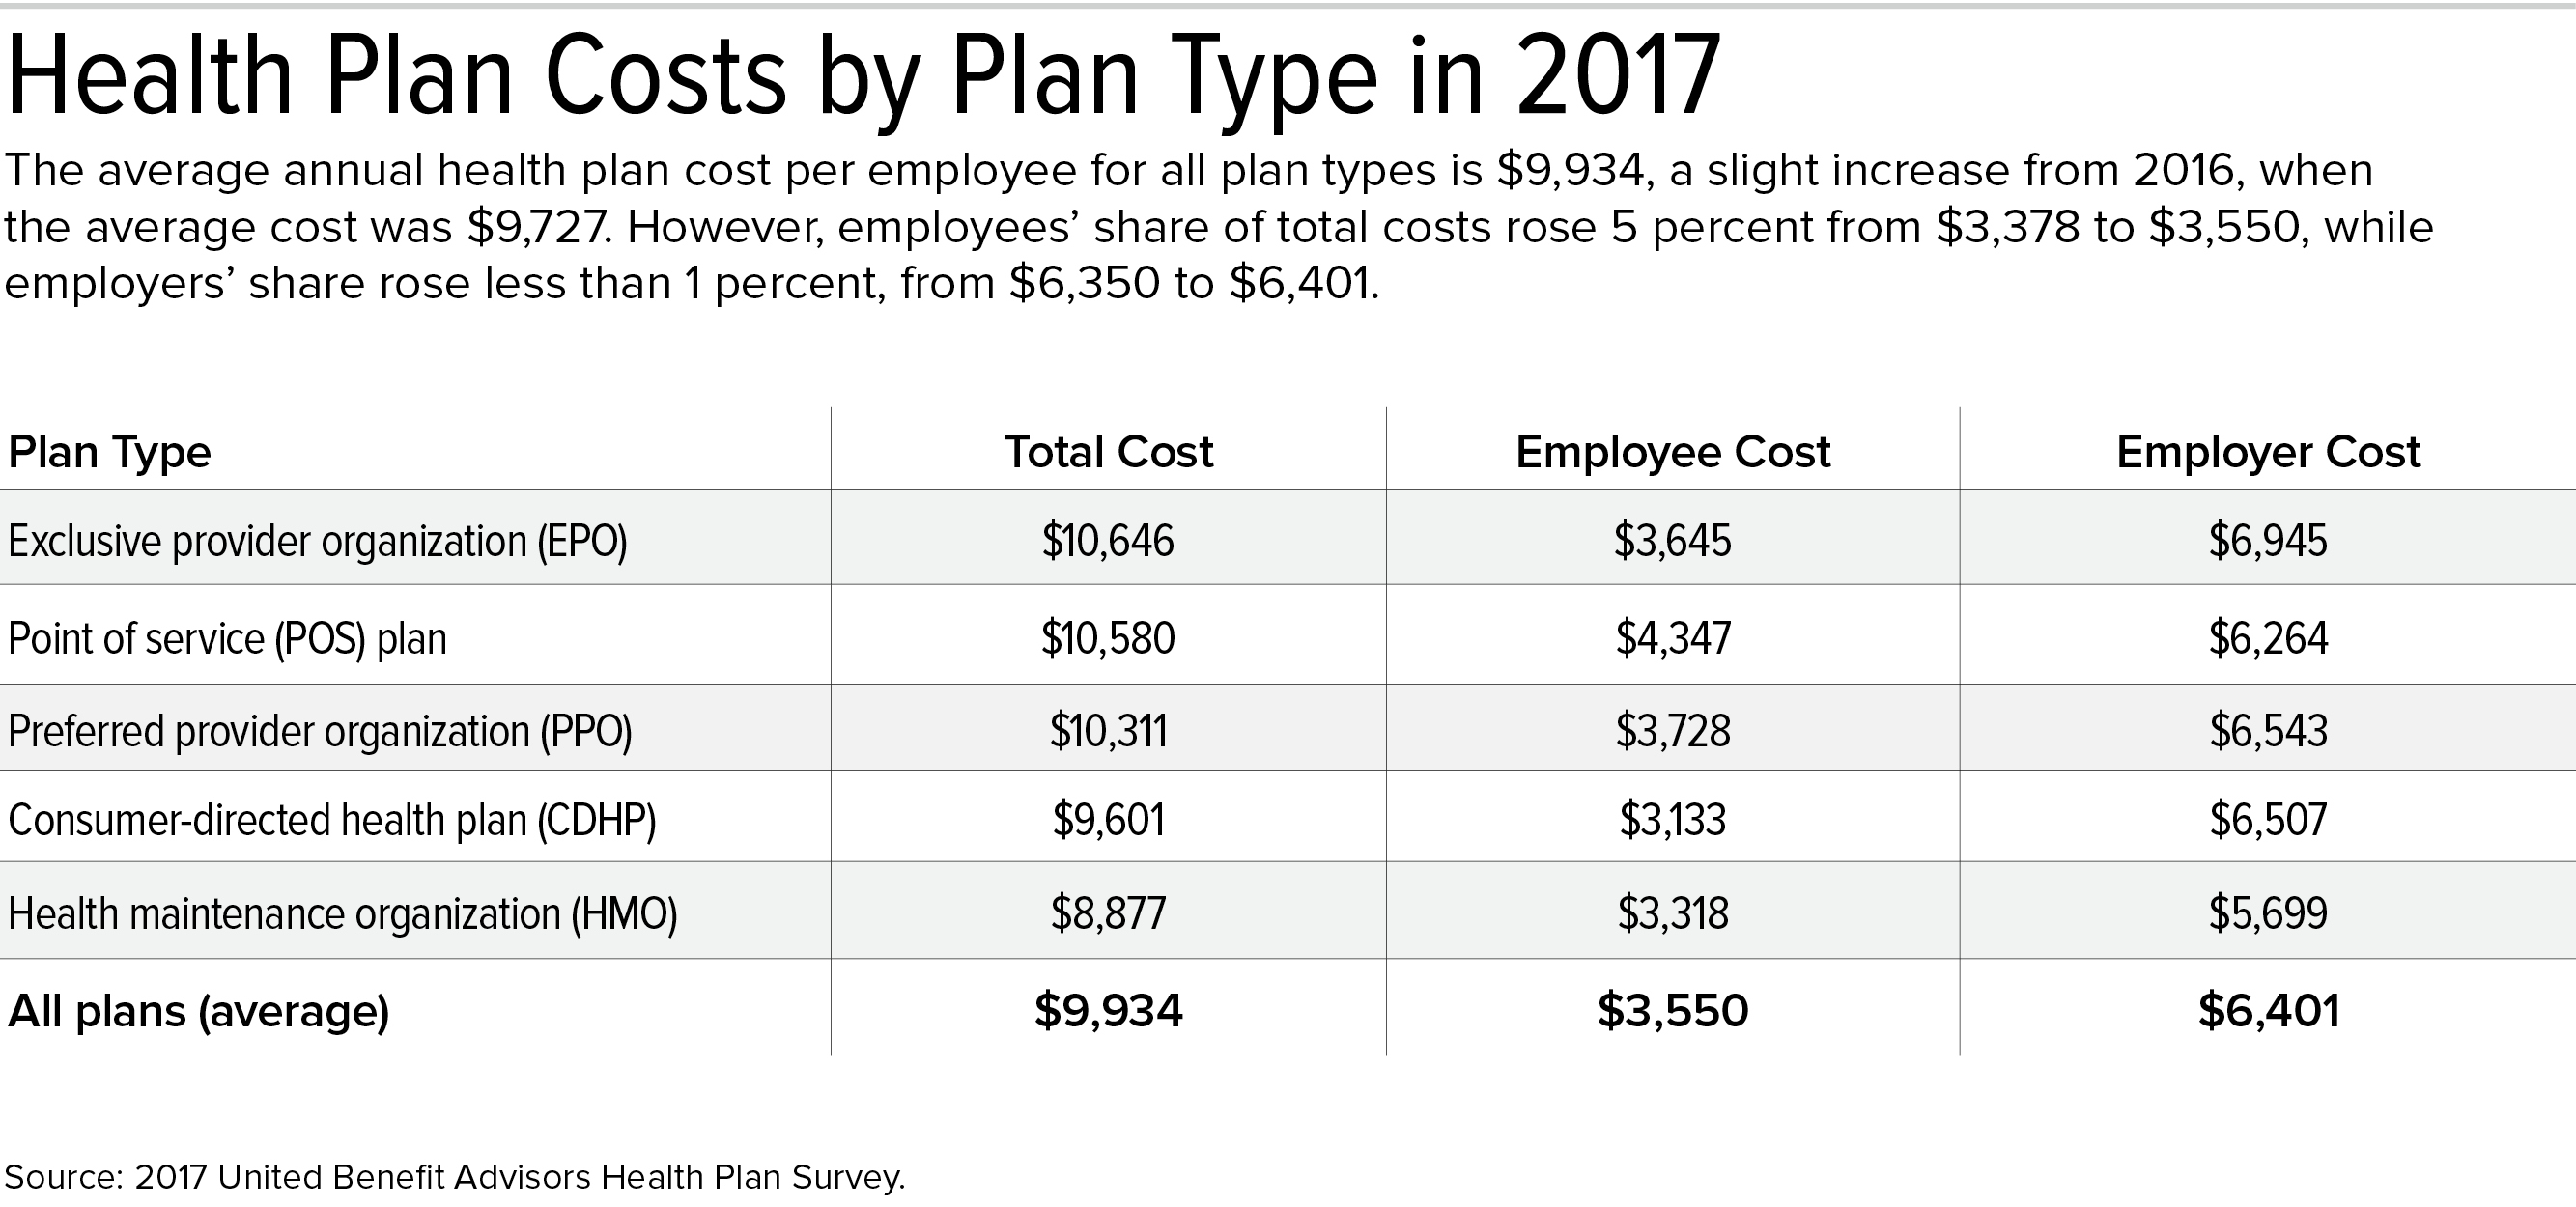 17-1453 Health Plan Costs 3-5.jpg